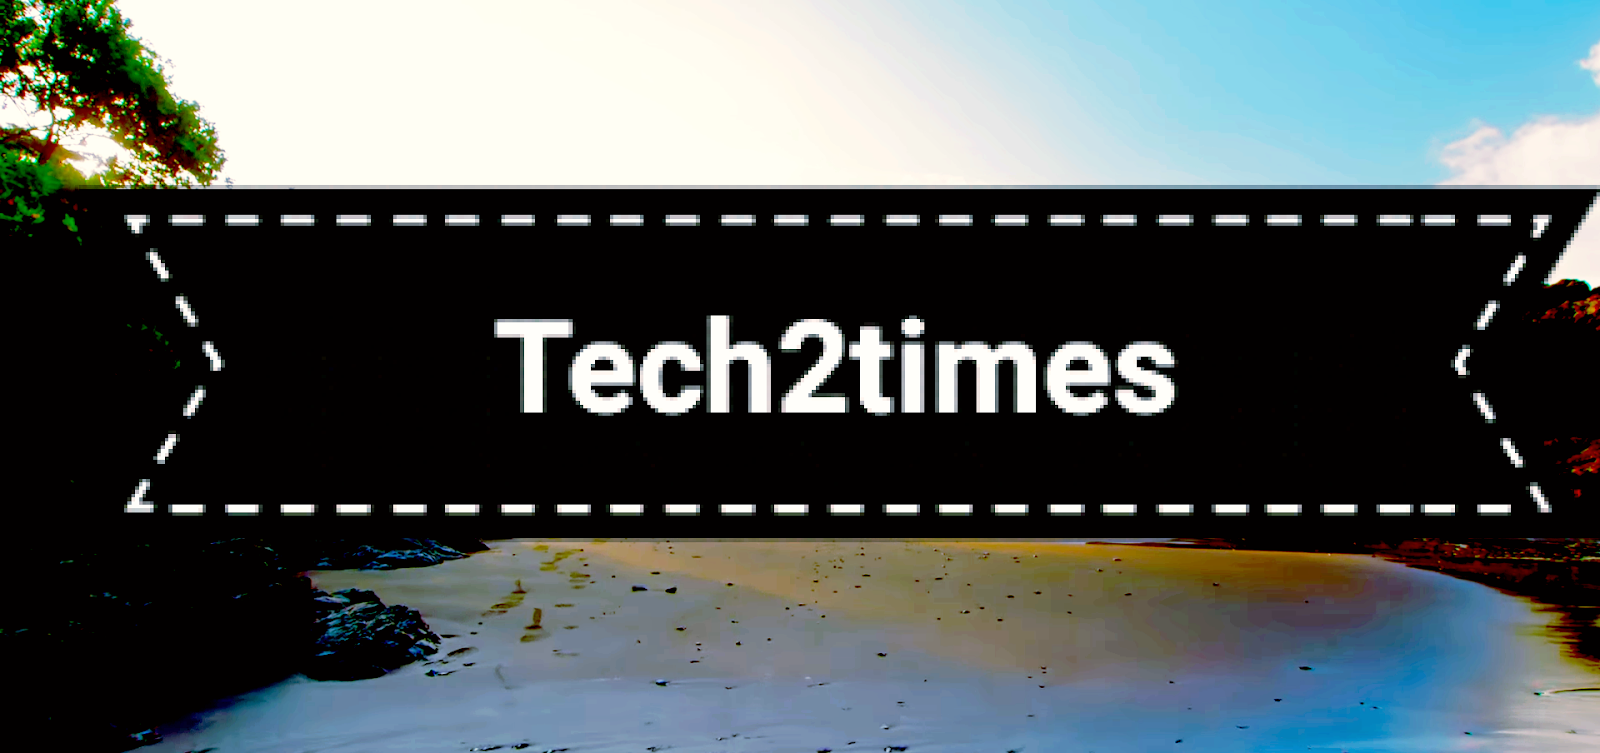 Tech 2 times - Latest gadget reviews and tech information